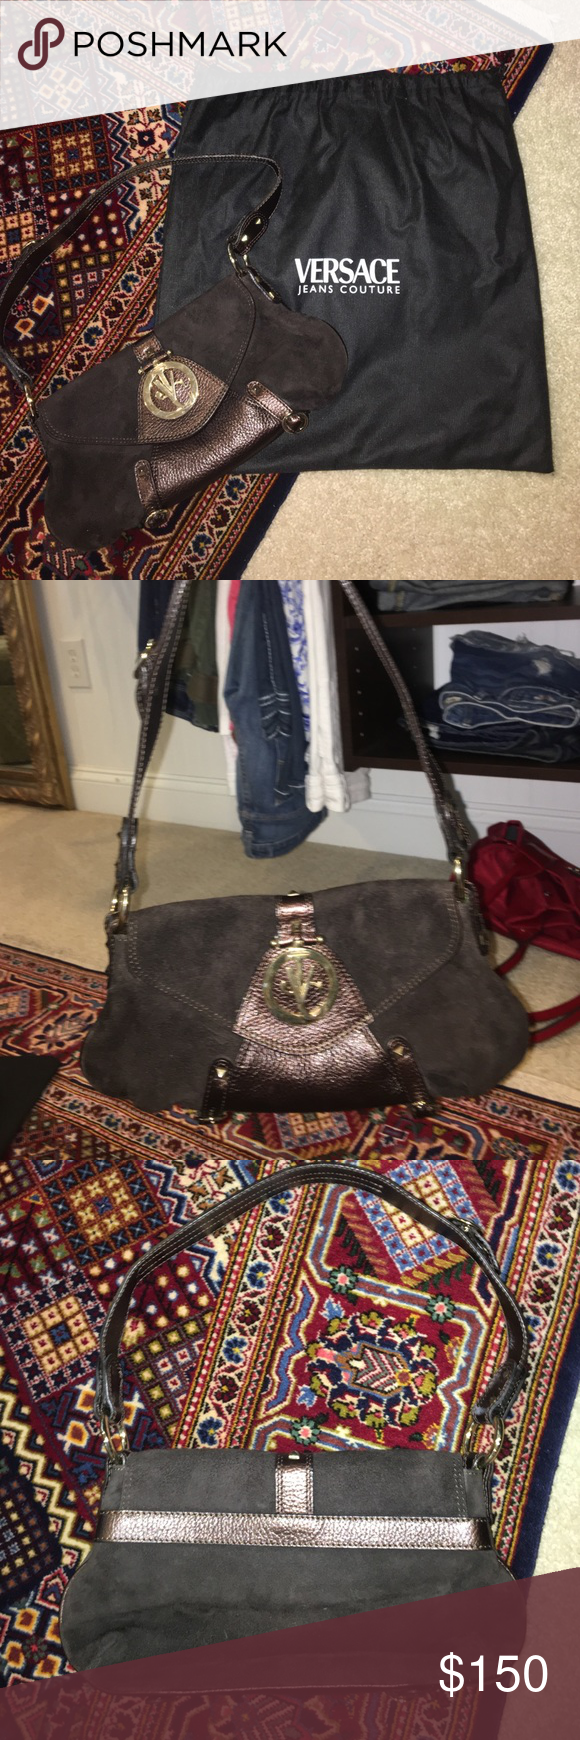 Versace Jeans Couture bag Authentic brown Versace bag that comes with dust  bag. Beautiful lime green inside w Versace stitch Versace Bags Mini Bags 13666ea914